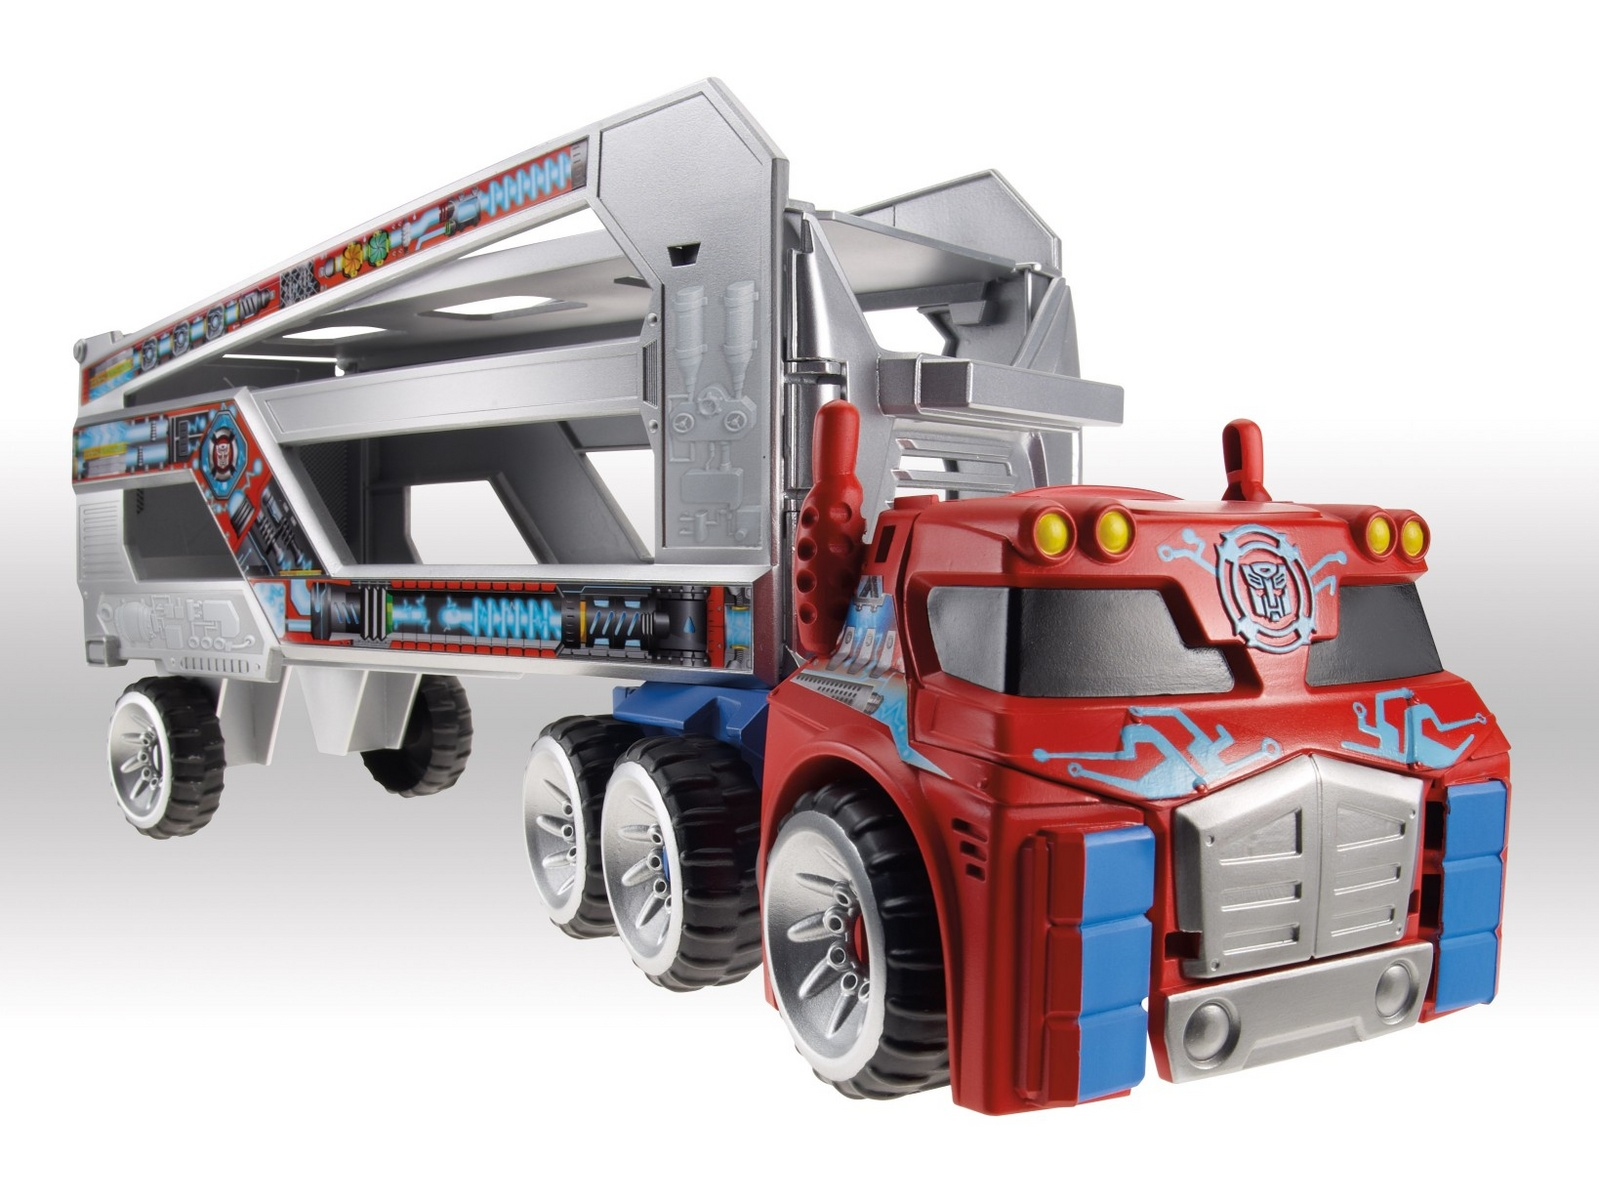 Optimus Prime Rescue Trailer Image